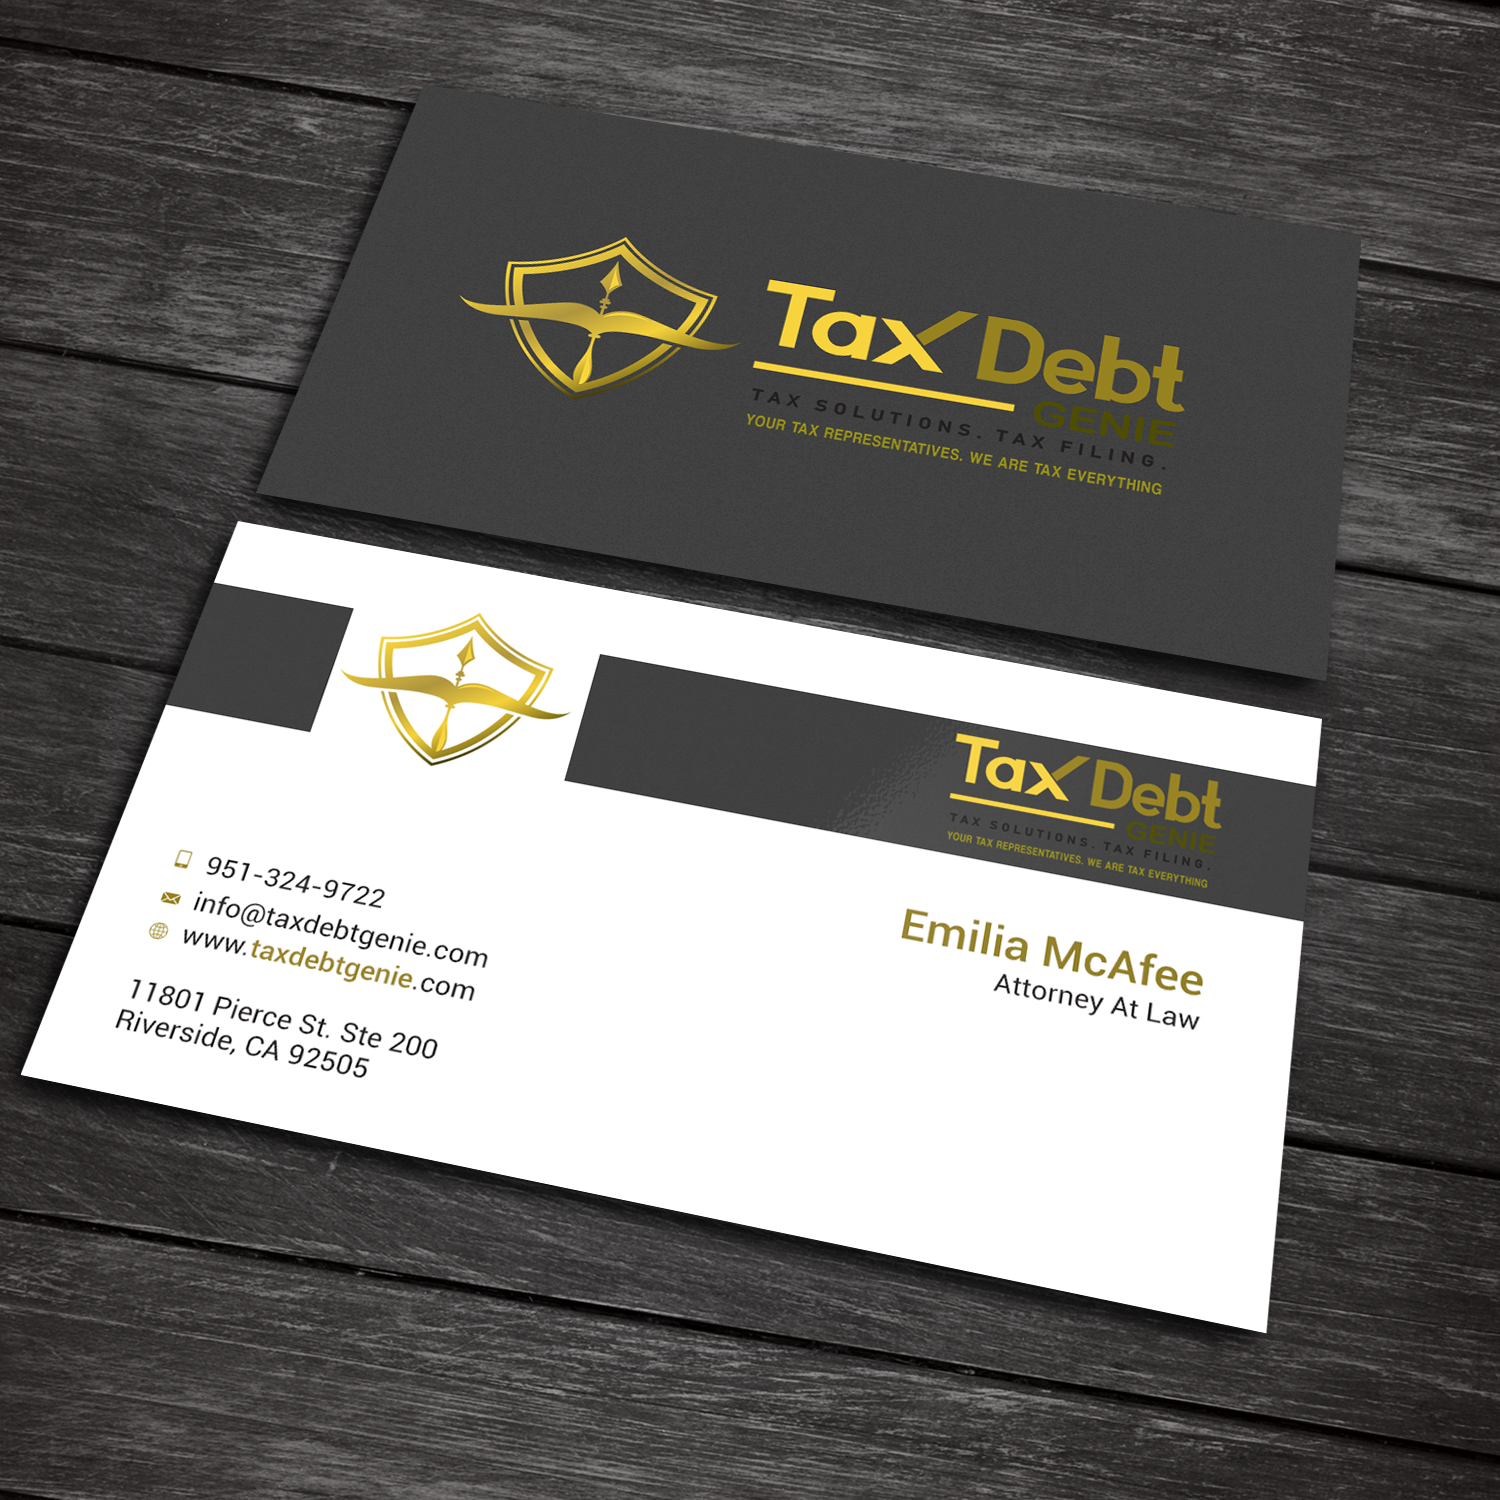 Upmarket Elegant Business Card Design For A Company By Sanrell